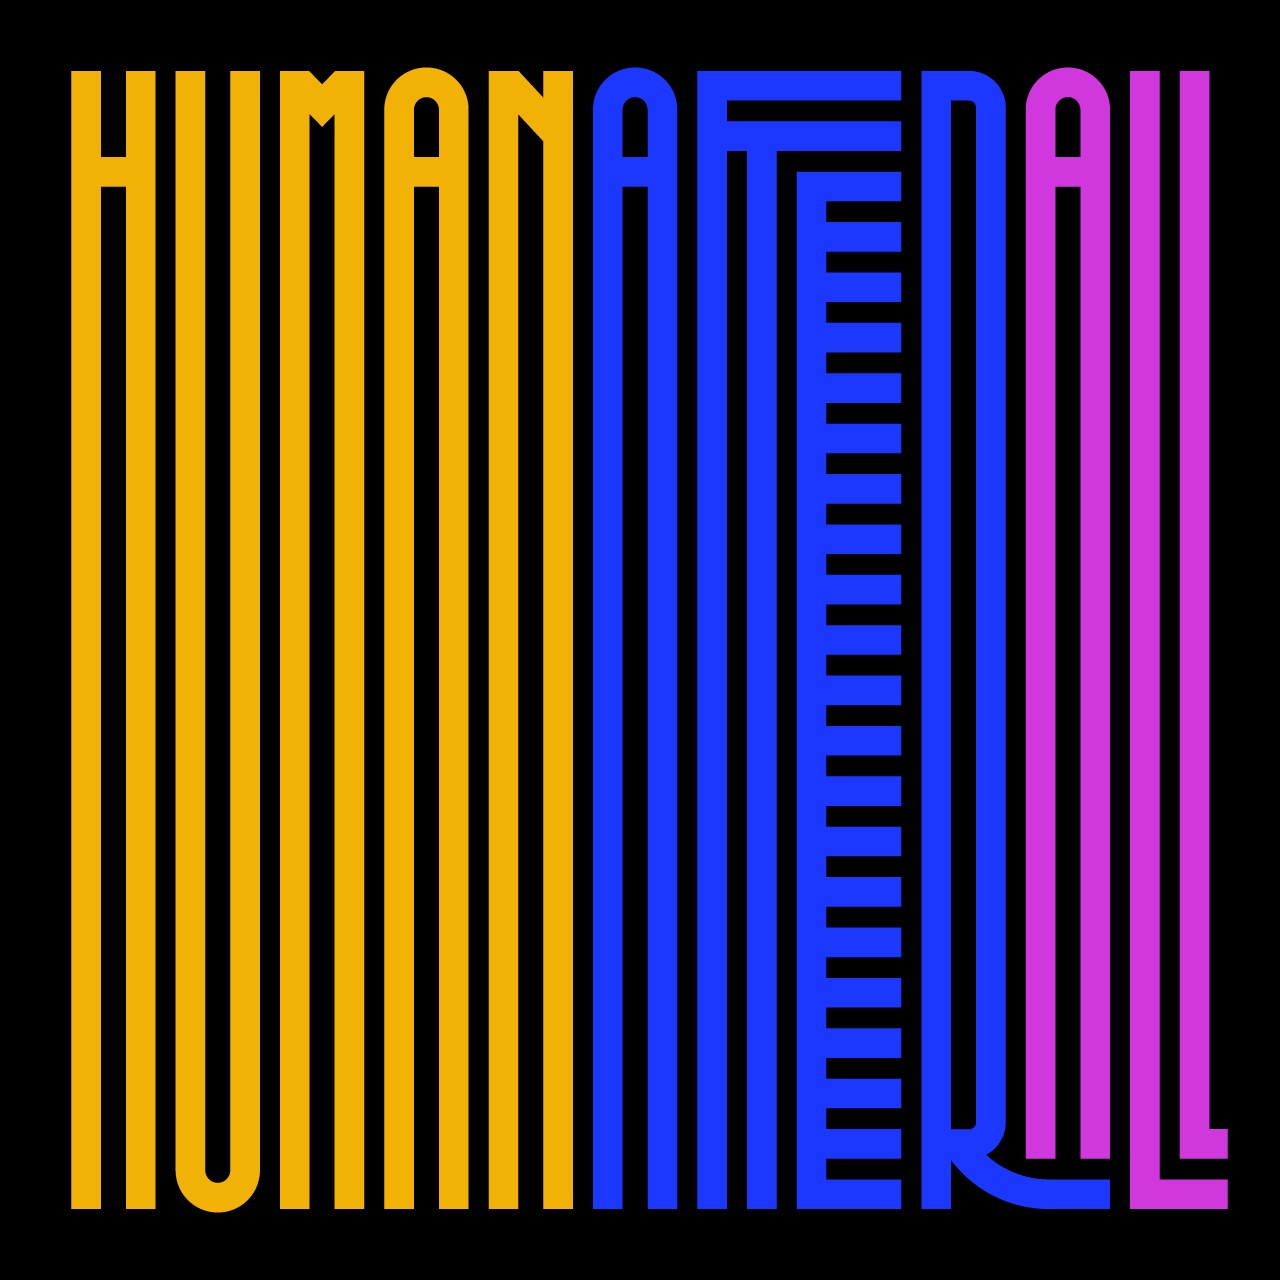 human-after-all